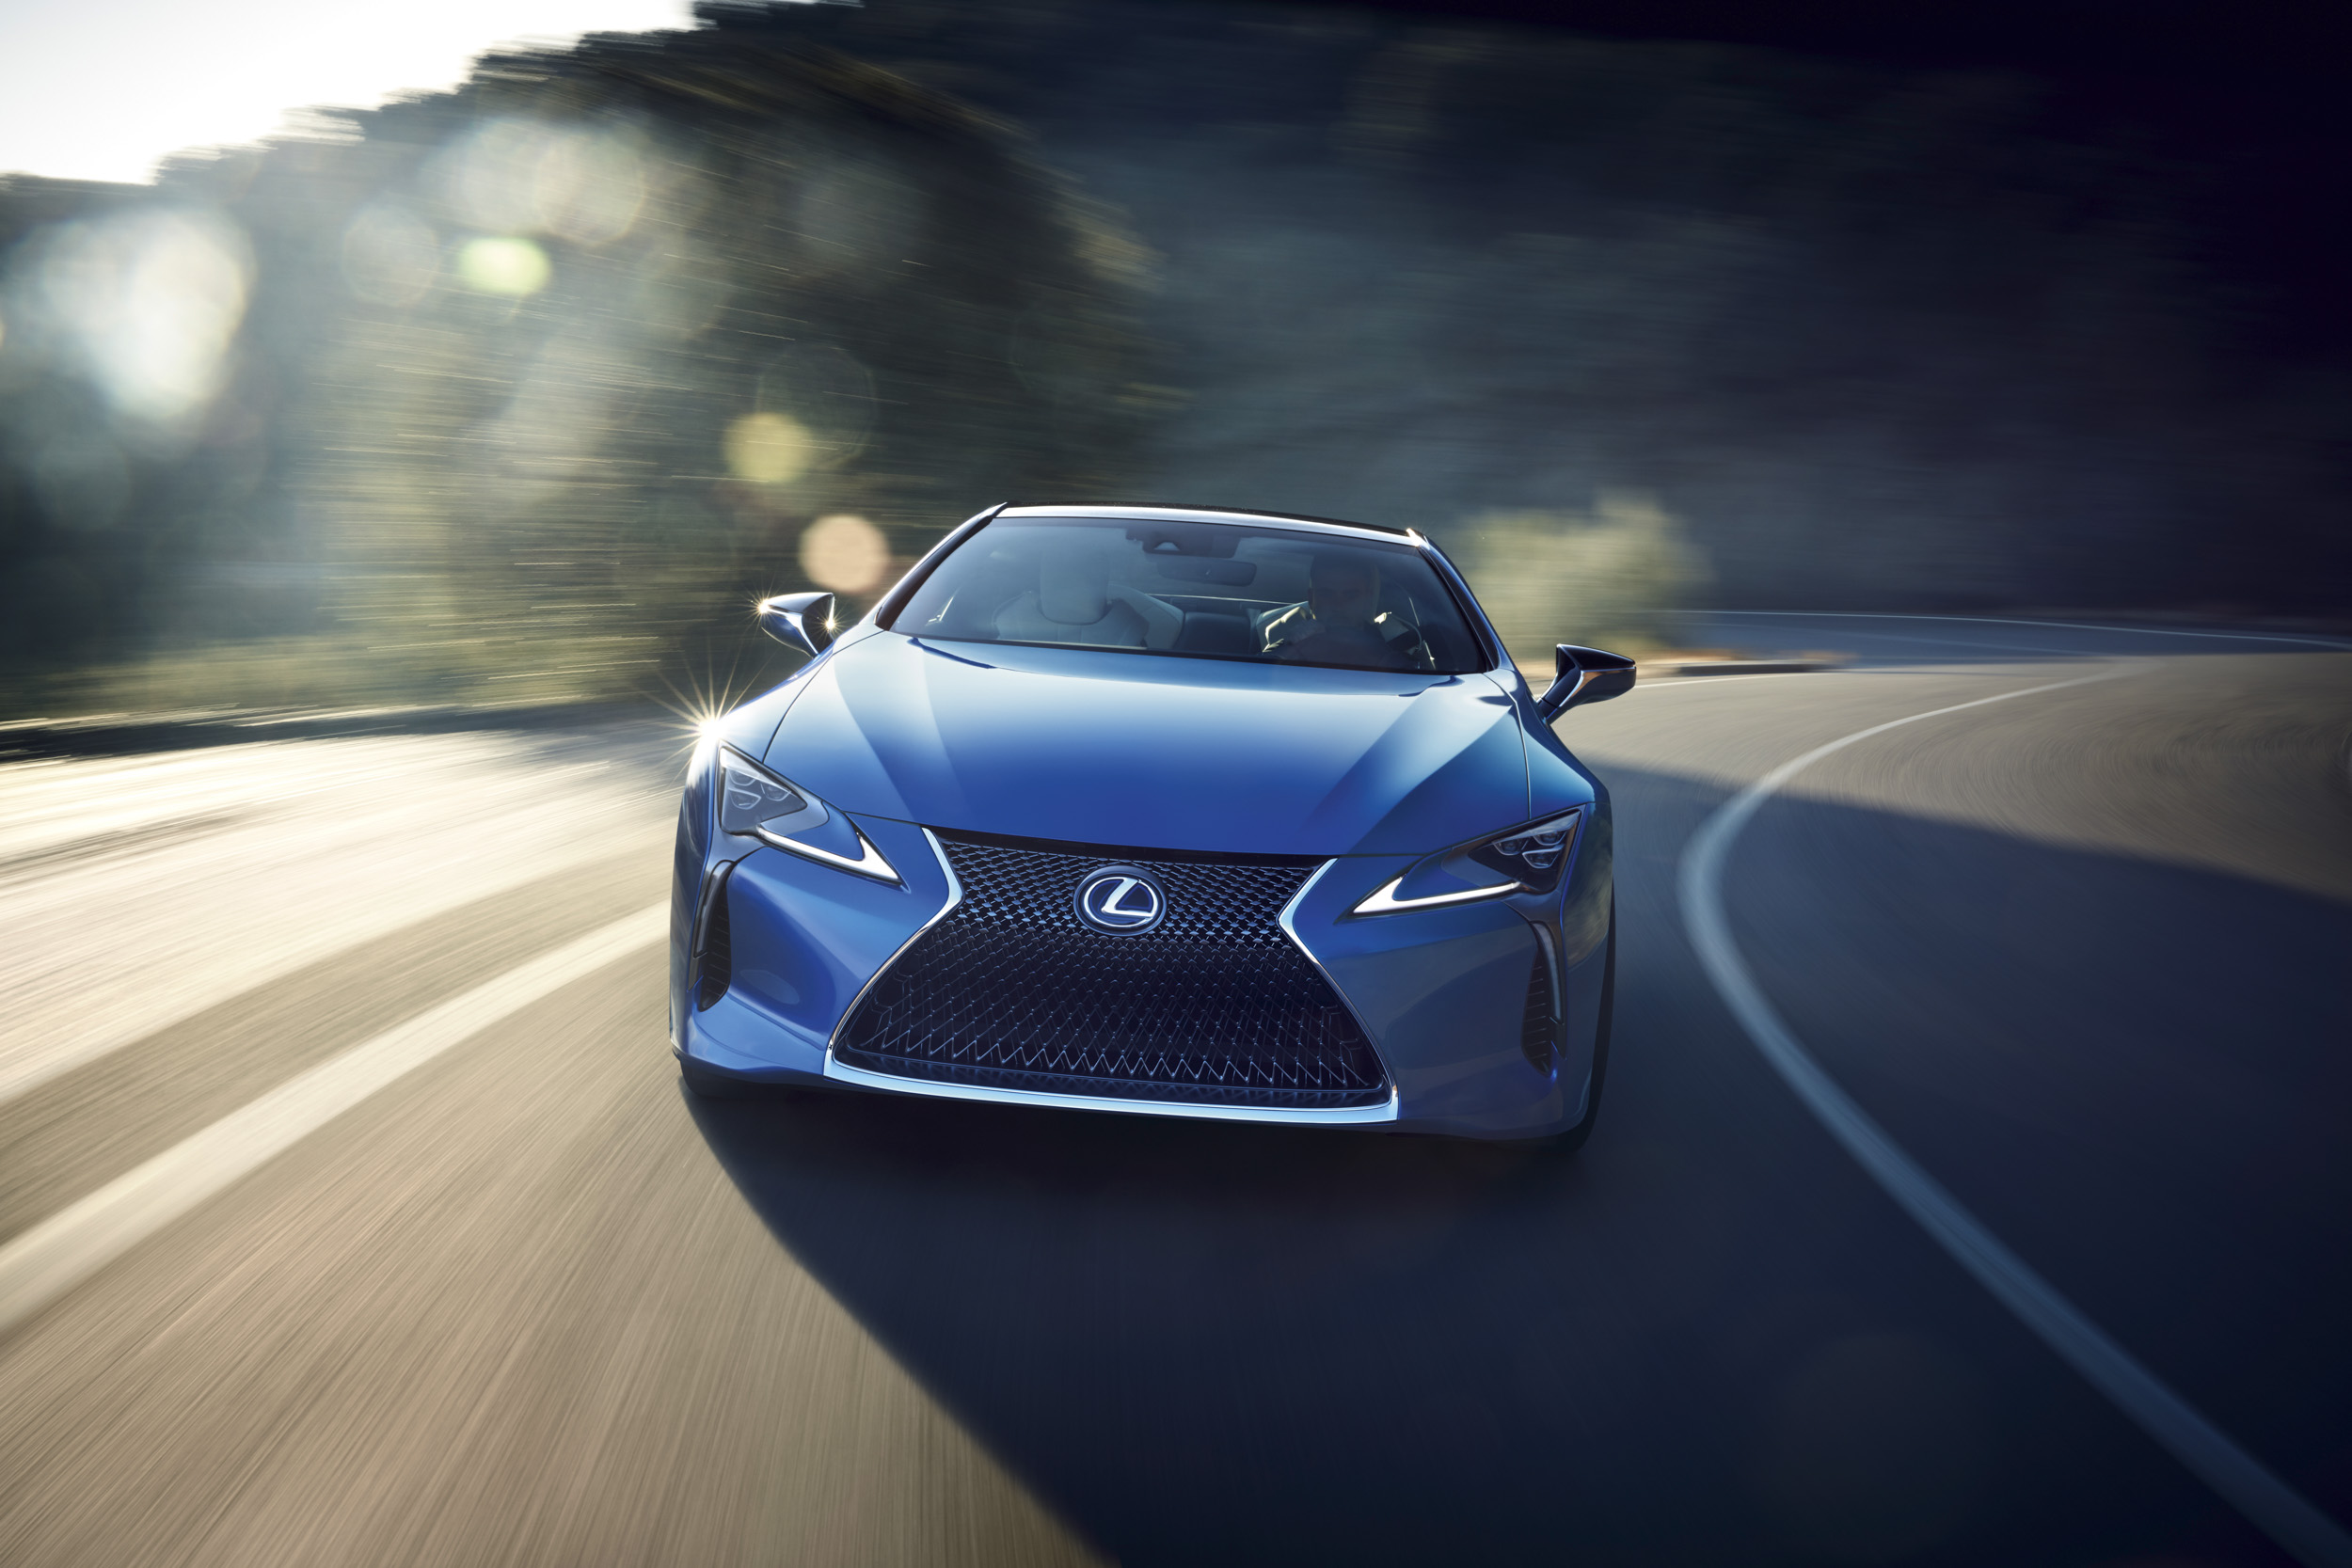 The Lexus Lc S Blue Paint Took 15 Years To Develop The Drive